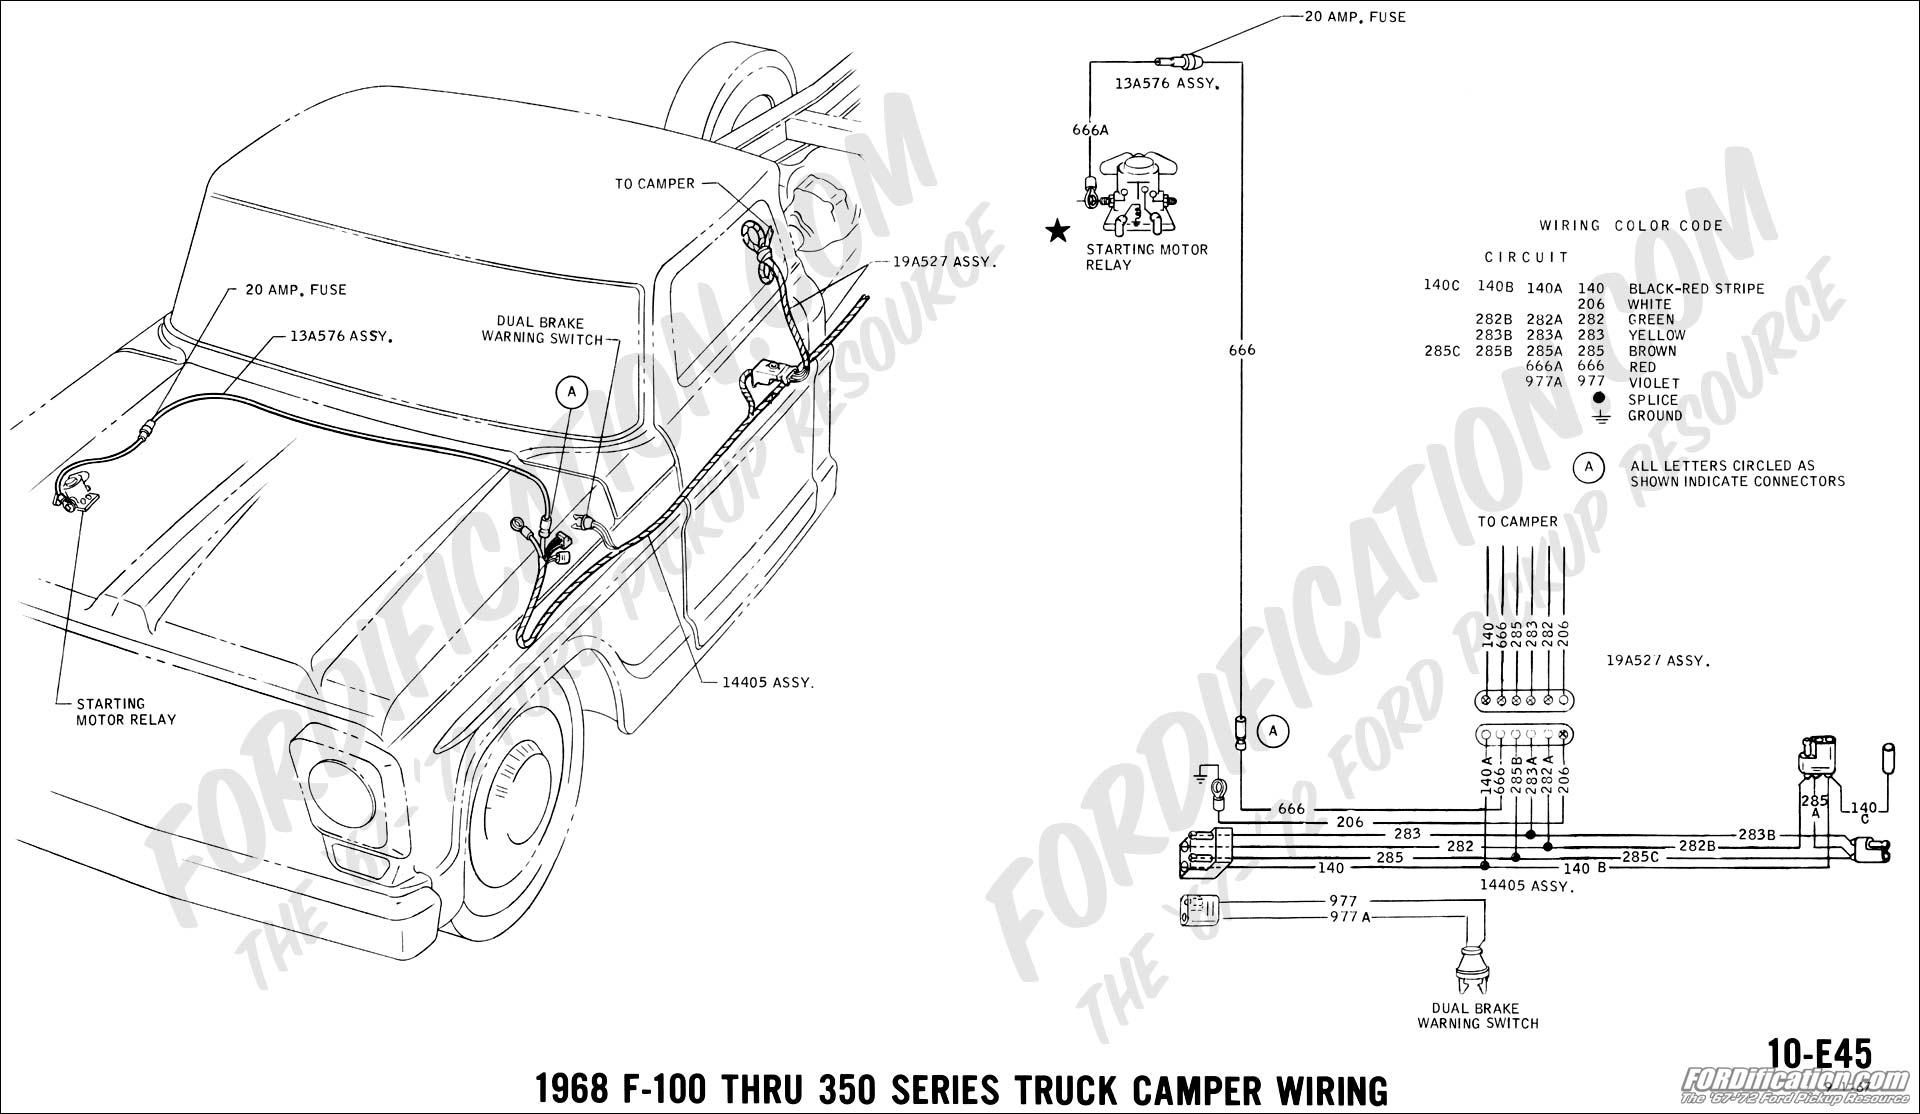 68 47 ford truck technical drawings and schematics section h wiring truck camper wiring diagram at gsmportal.co